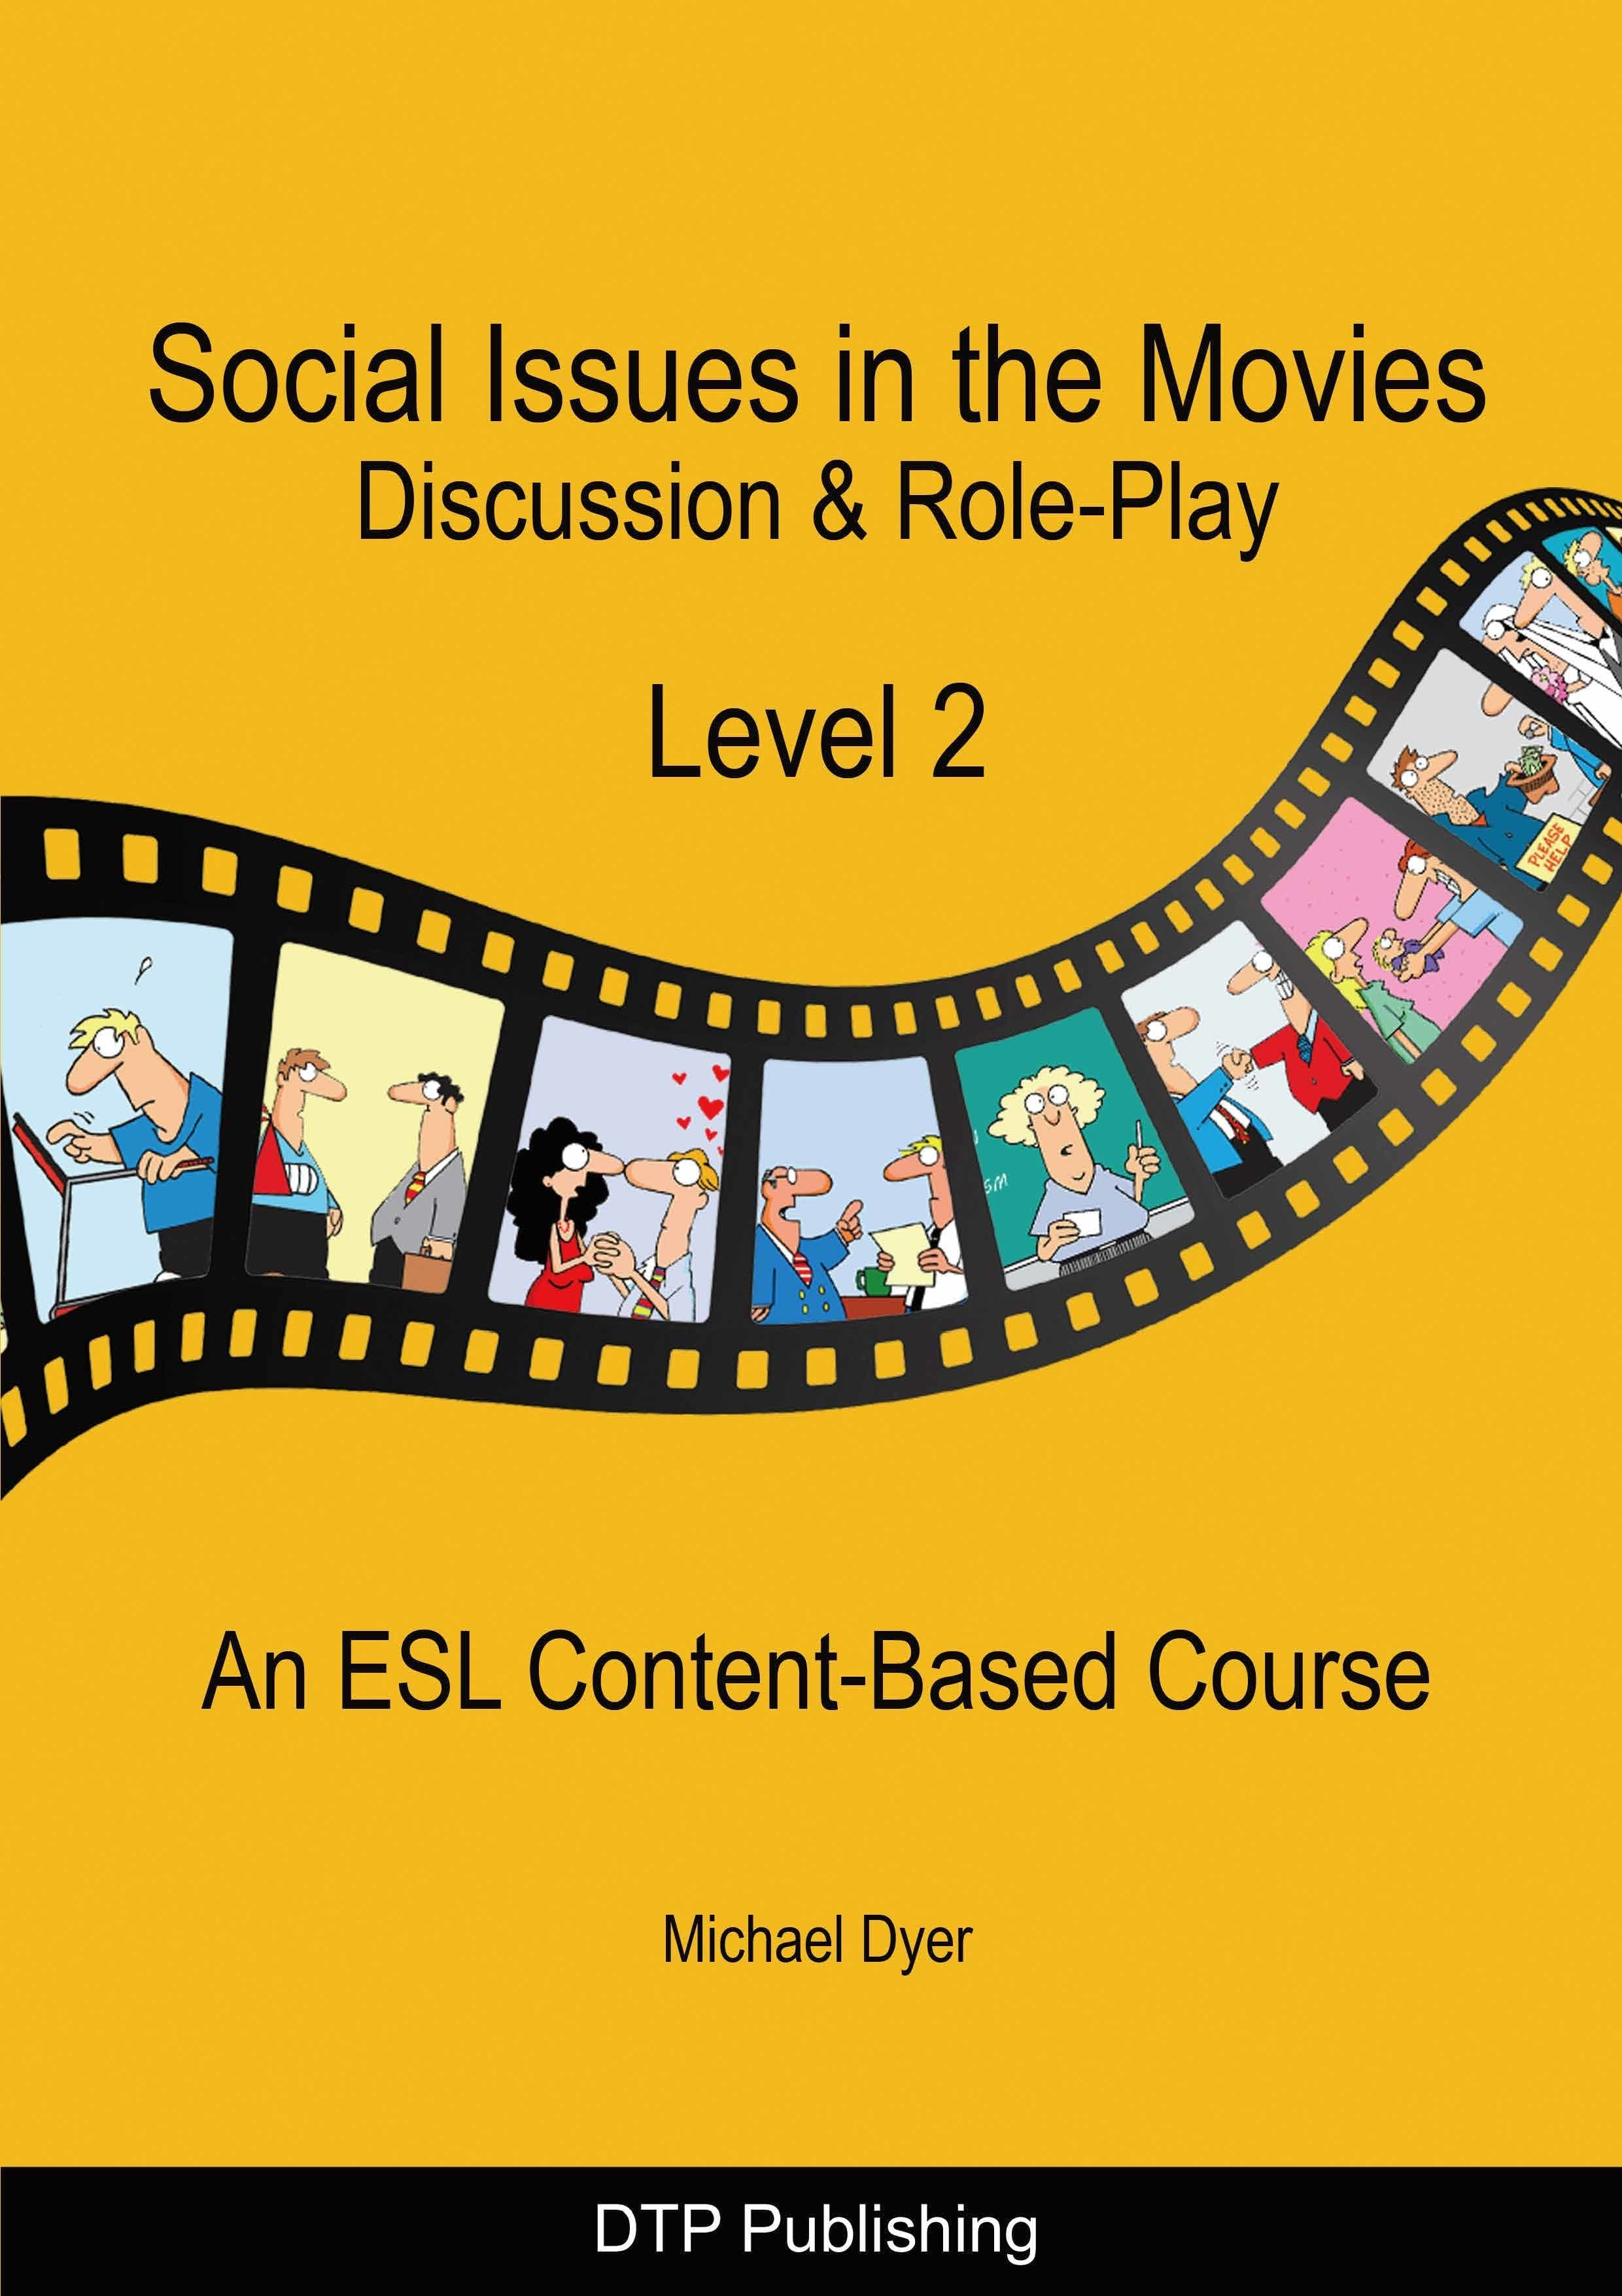 『Social Issues in the Movies Level2』Michael Dyer 著